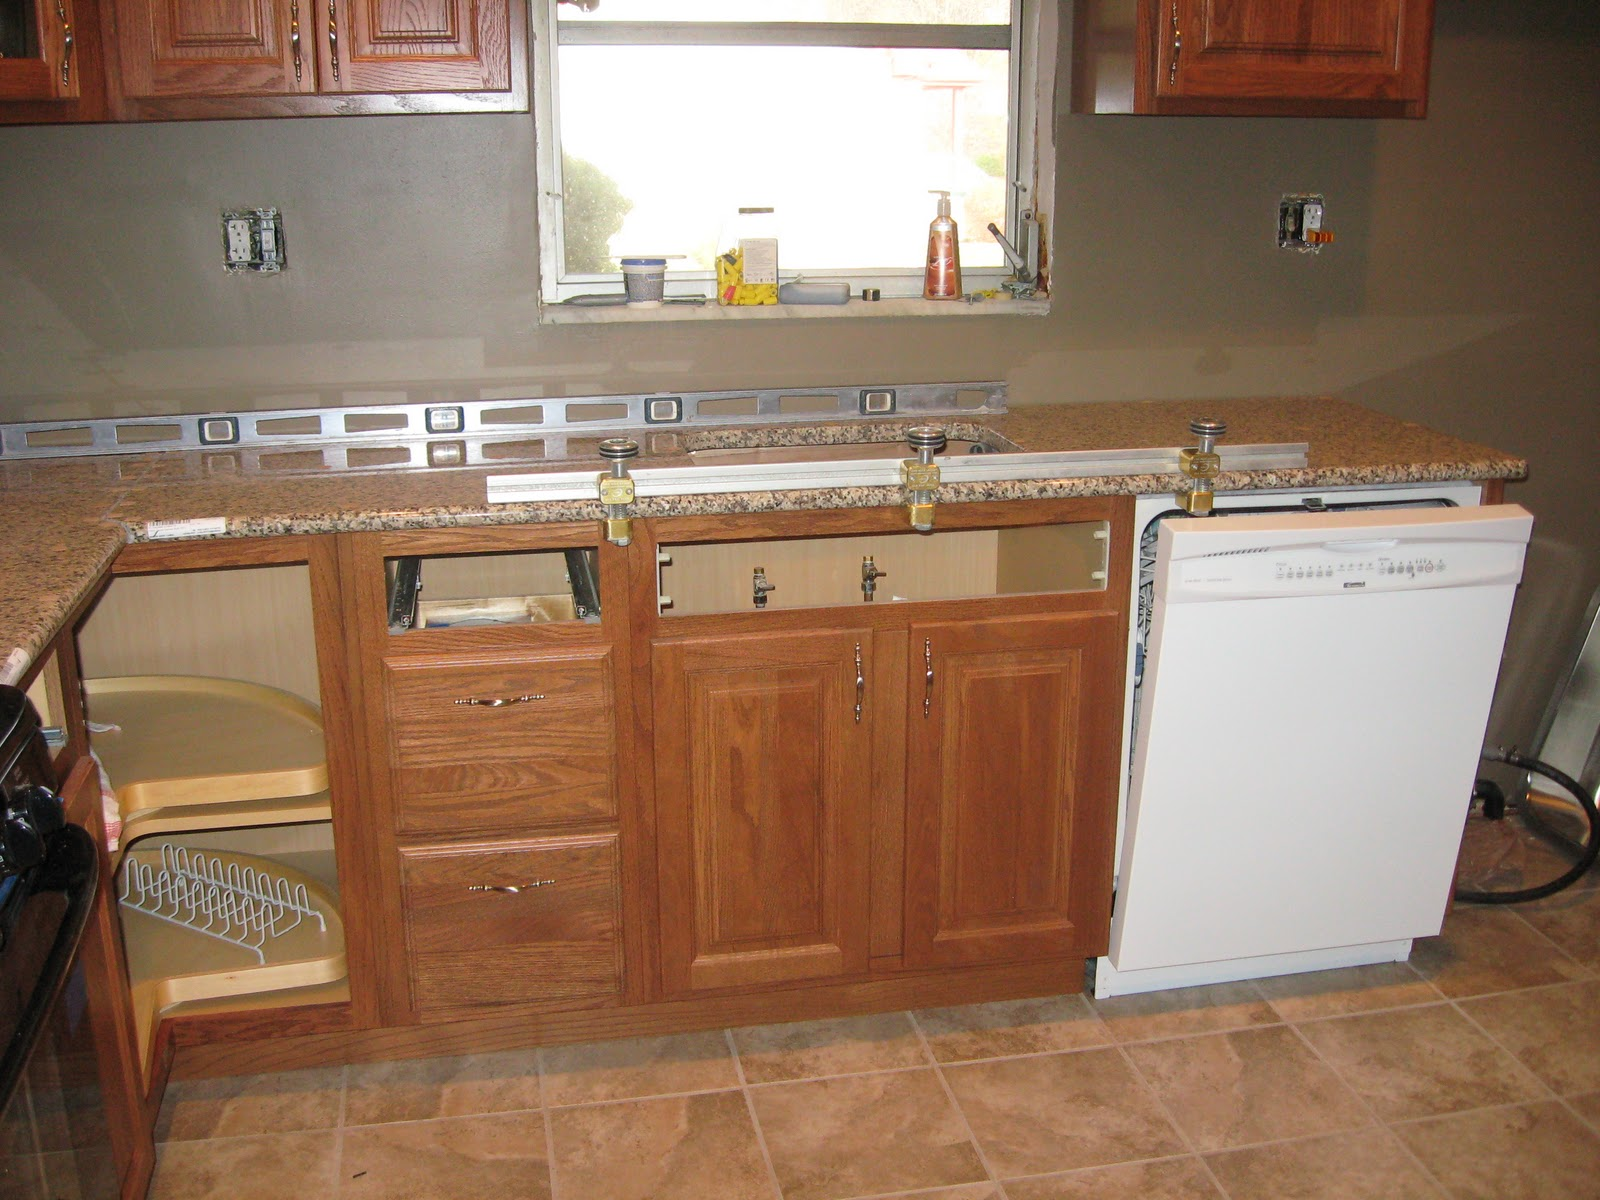 can see the easiest part of the job since there was no backsplash